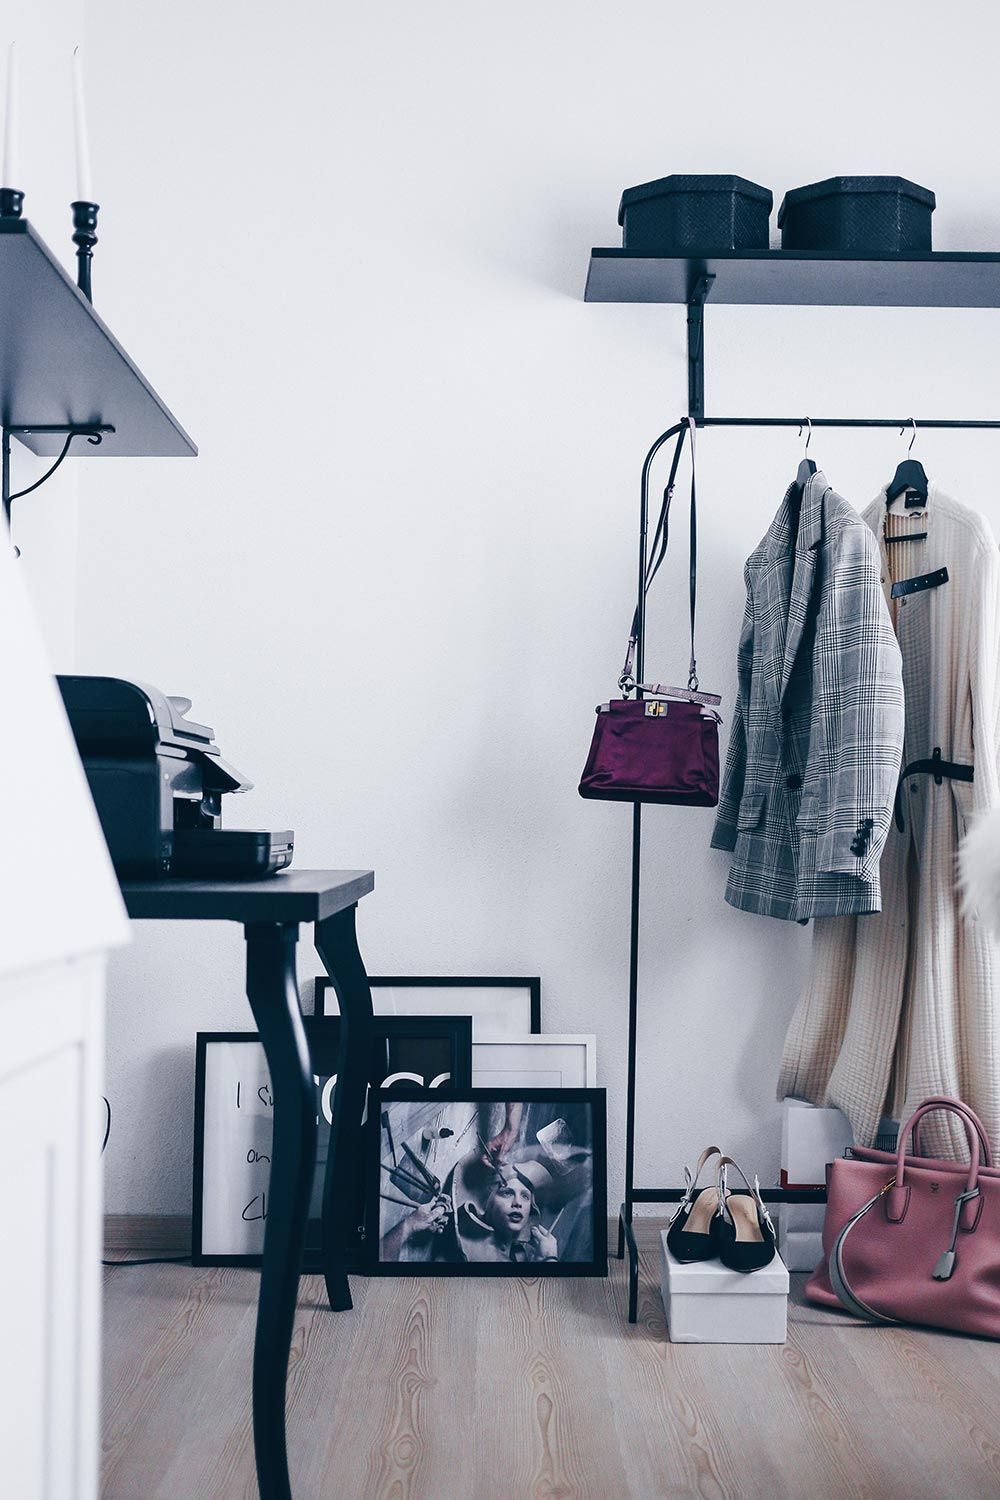 Mein Blogger Home Office: Stylisch, aber funktional | Closet ...